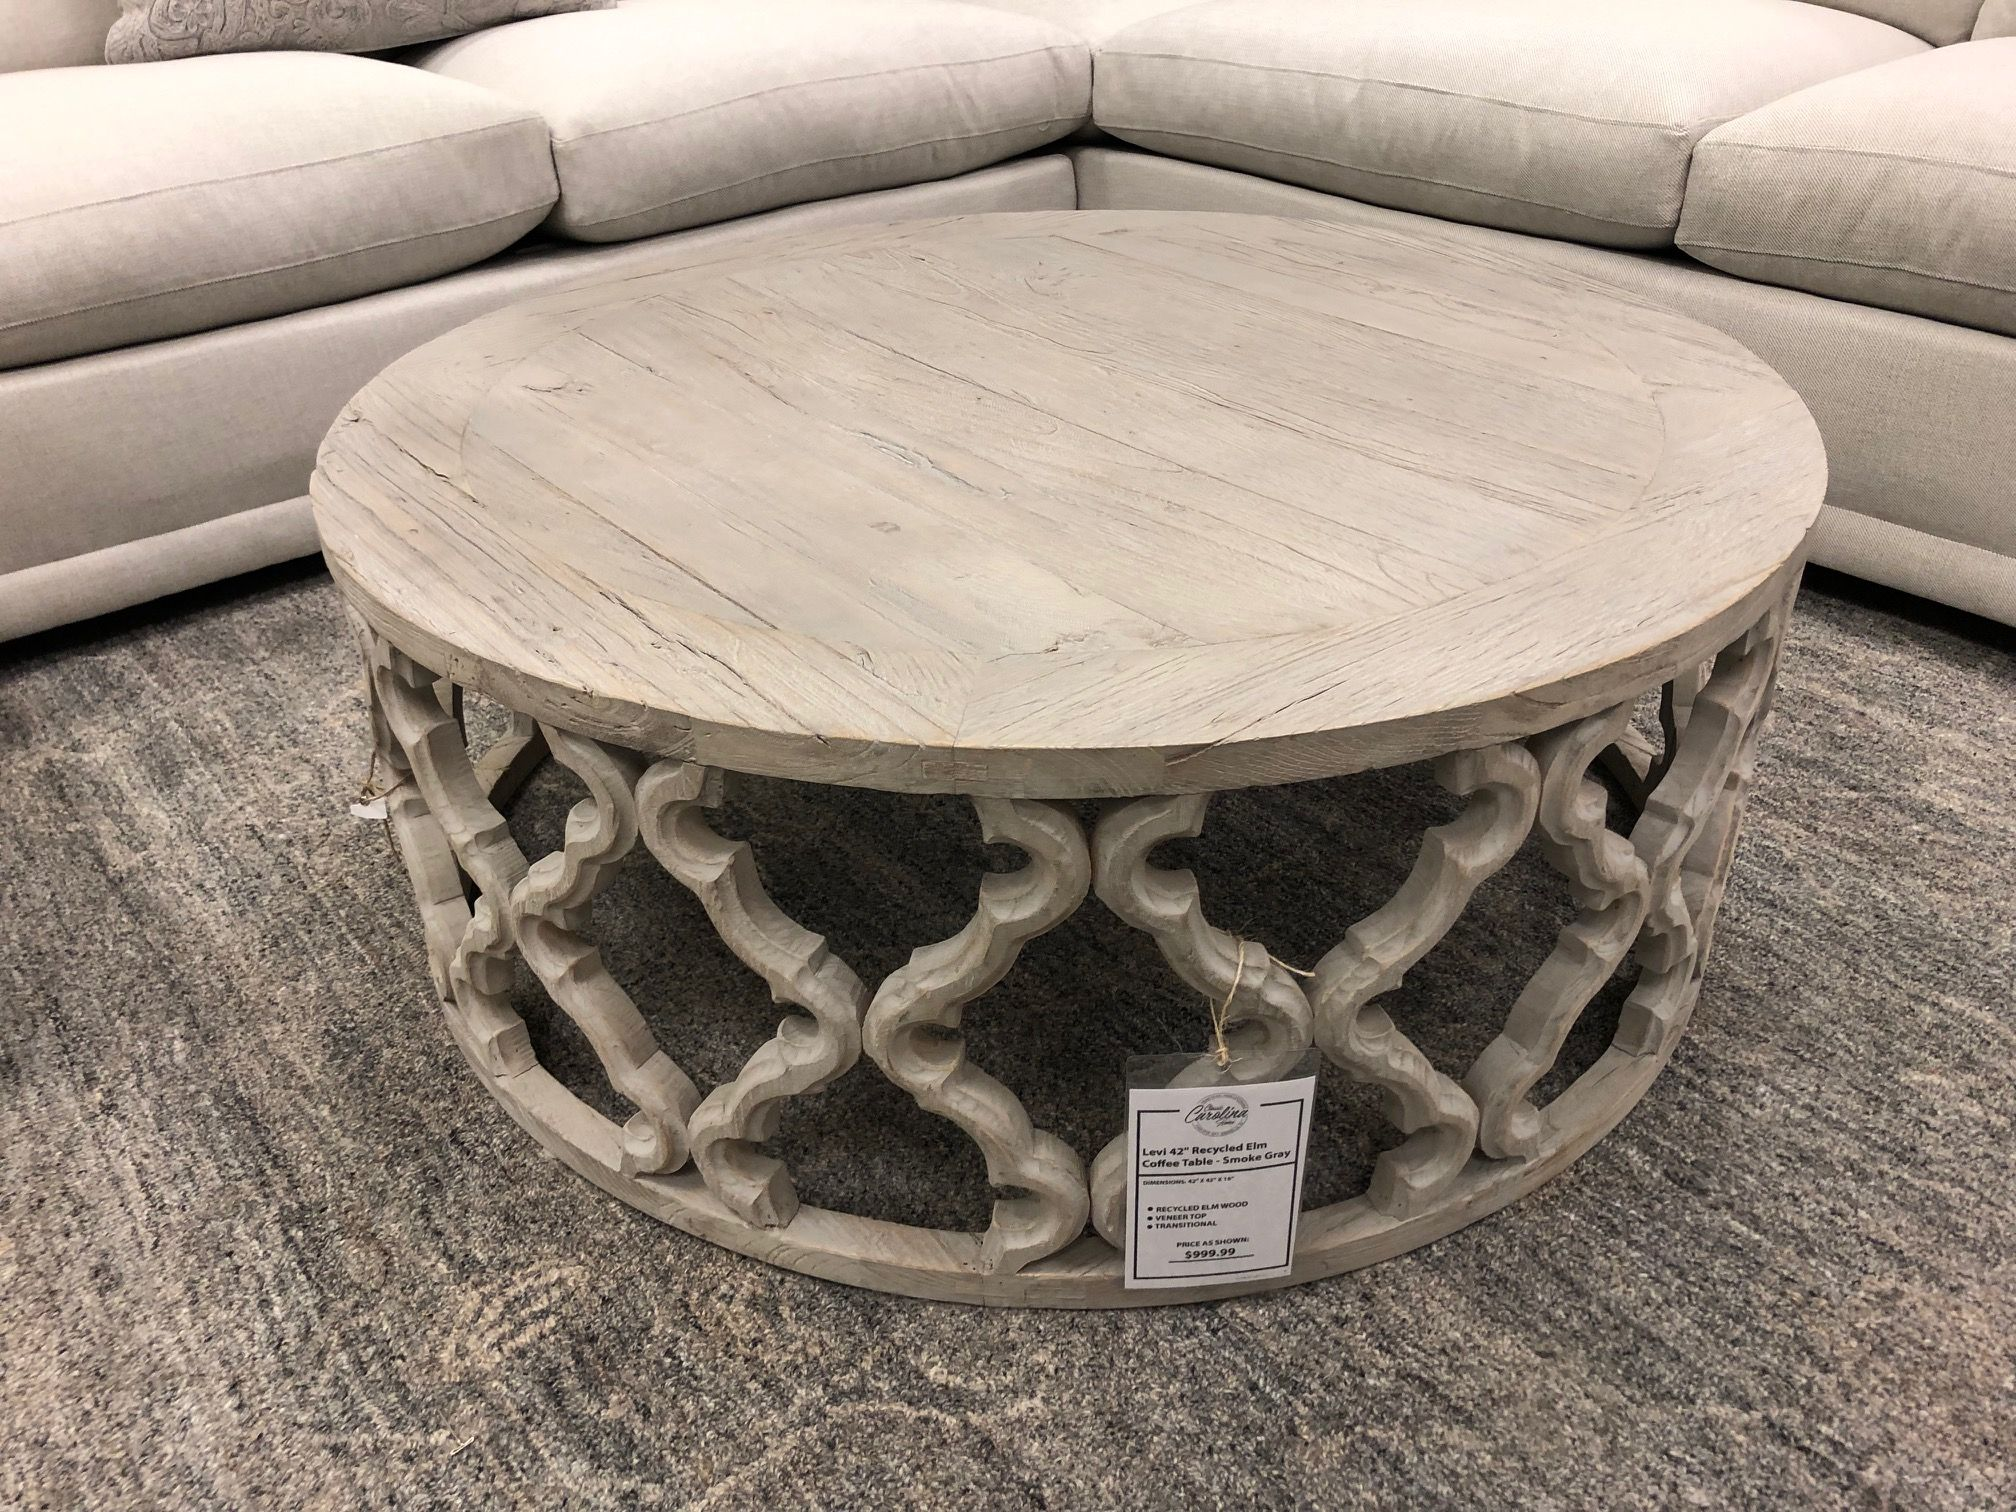 Levi 42 Recycled Elm Coffee Table Smoke Gray In 2020 Elm